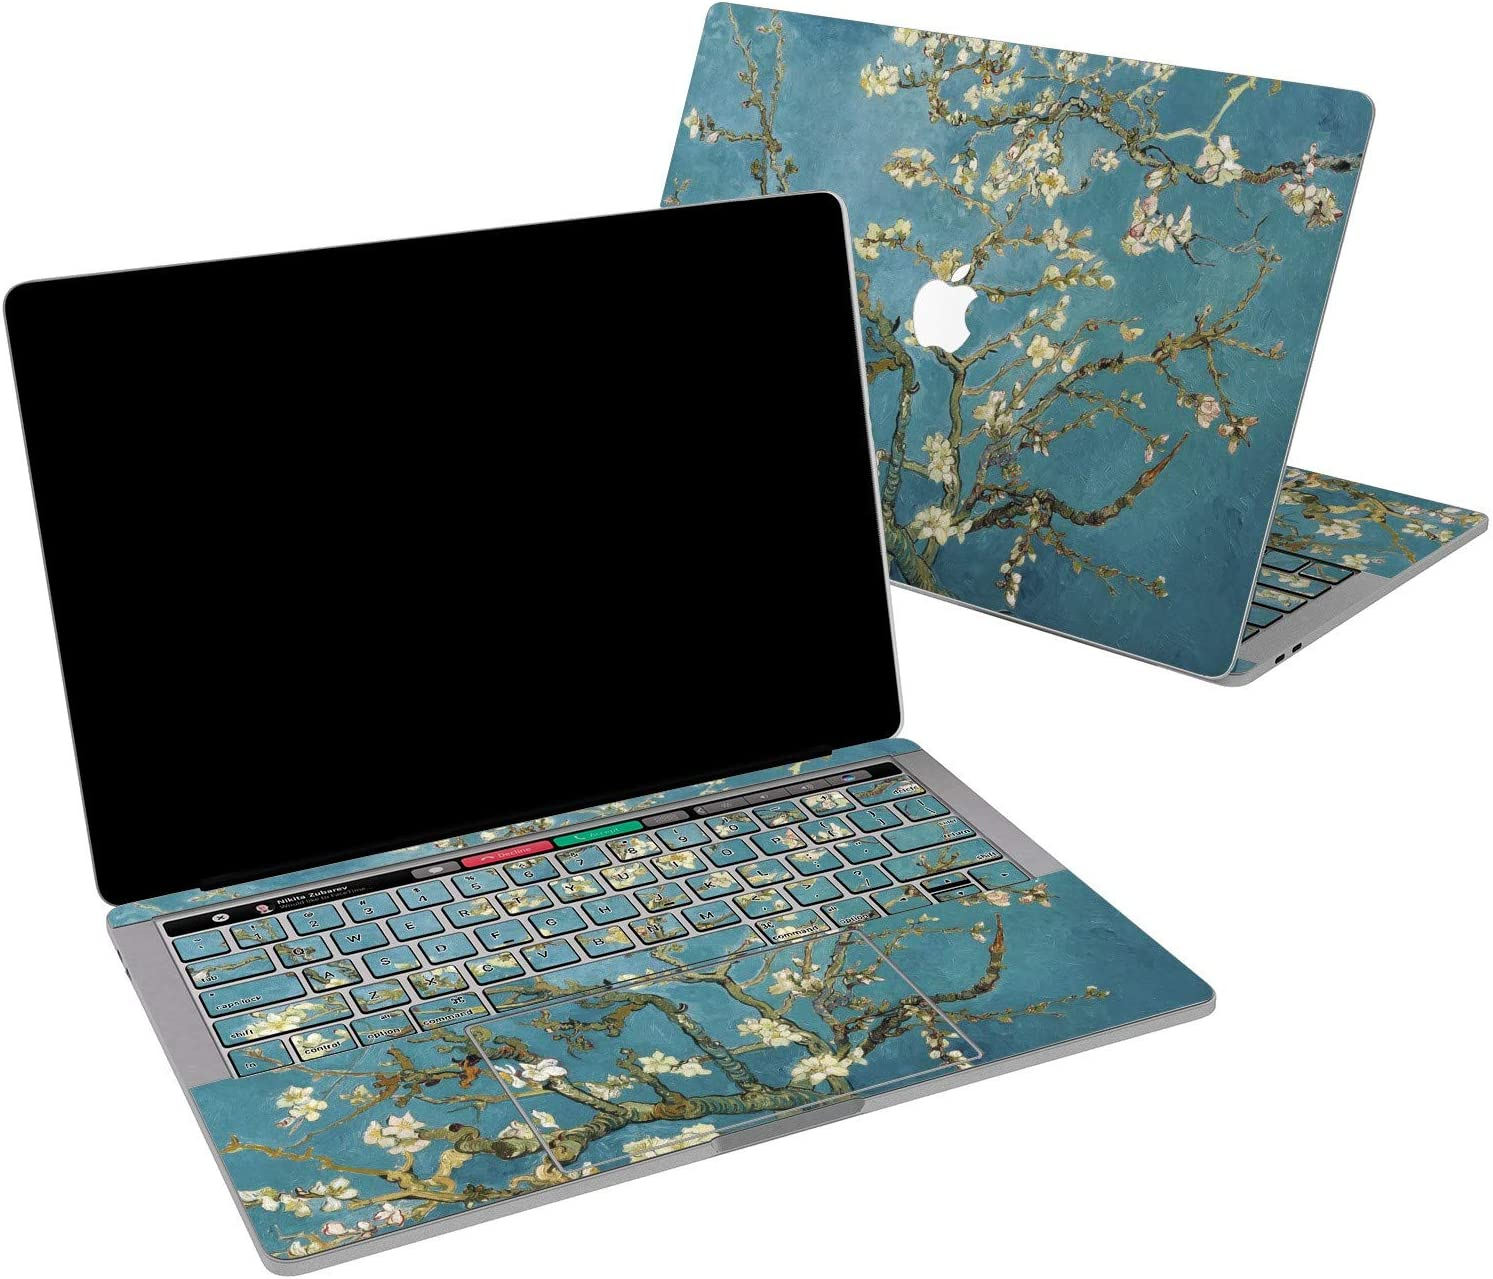 Lex Altern Vinyl Skin for MacBook Air 13 inch Mac Pro 16 15 Retina 12 11 2020 2019 2018 2017 Vincent Van Gogh Almond Tree in Blossom Floral Print Laptop Cover Keyboard Decal Sticker Design Women